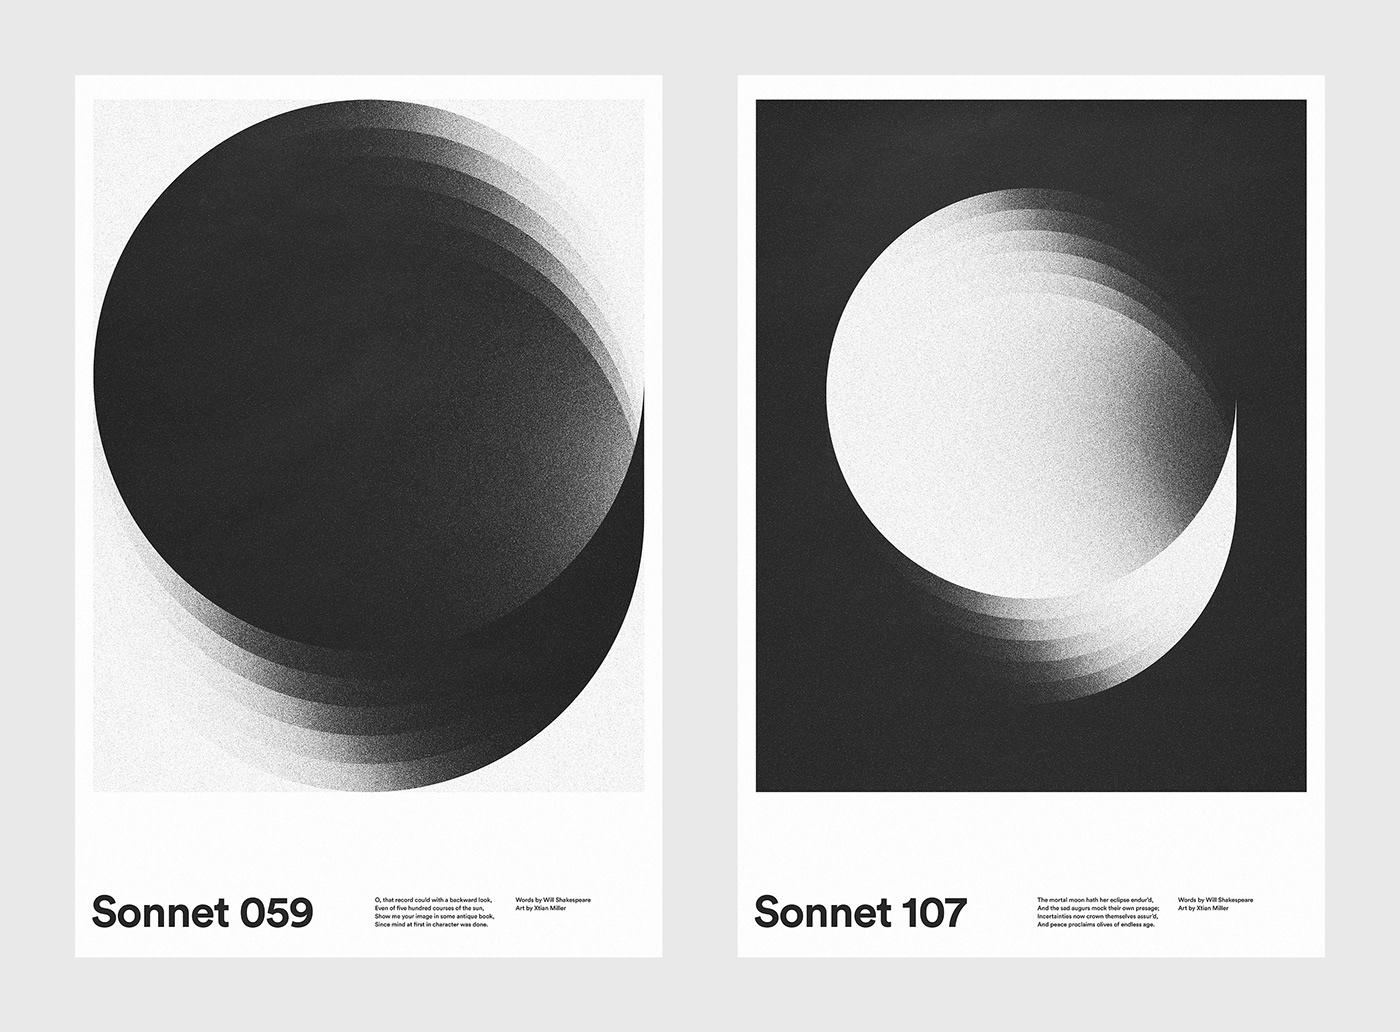 Sonnet 059 and 107